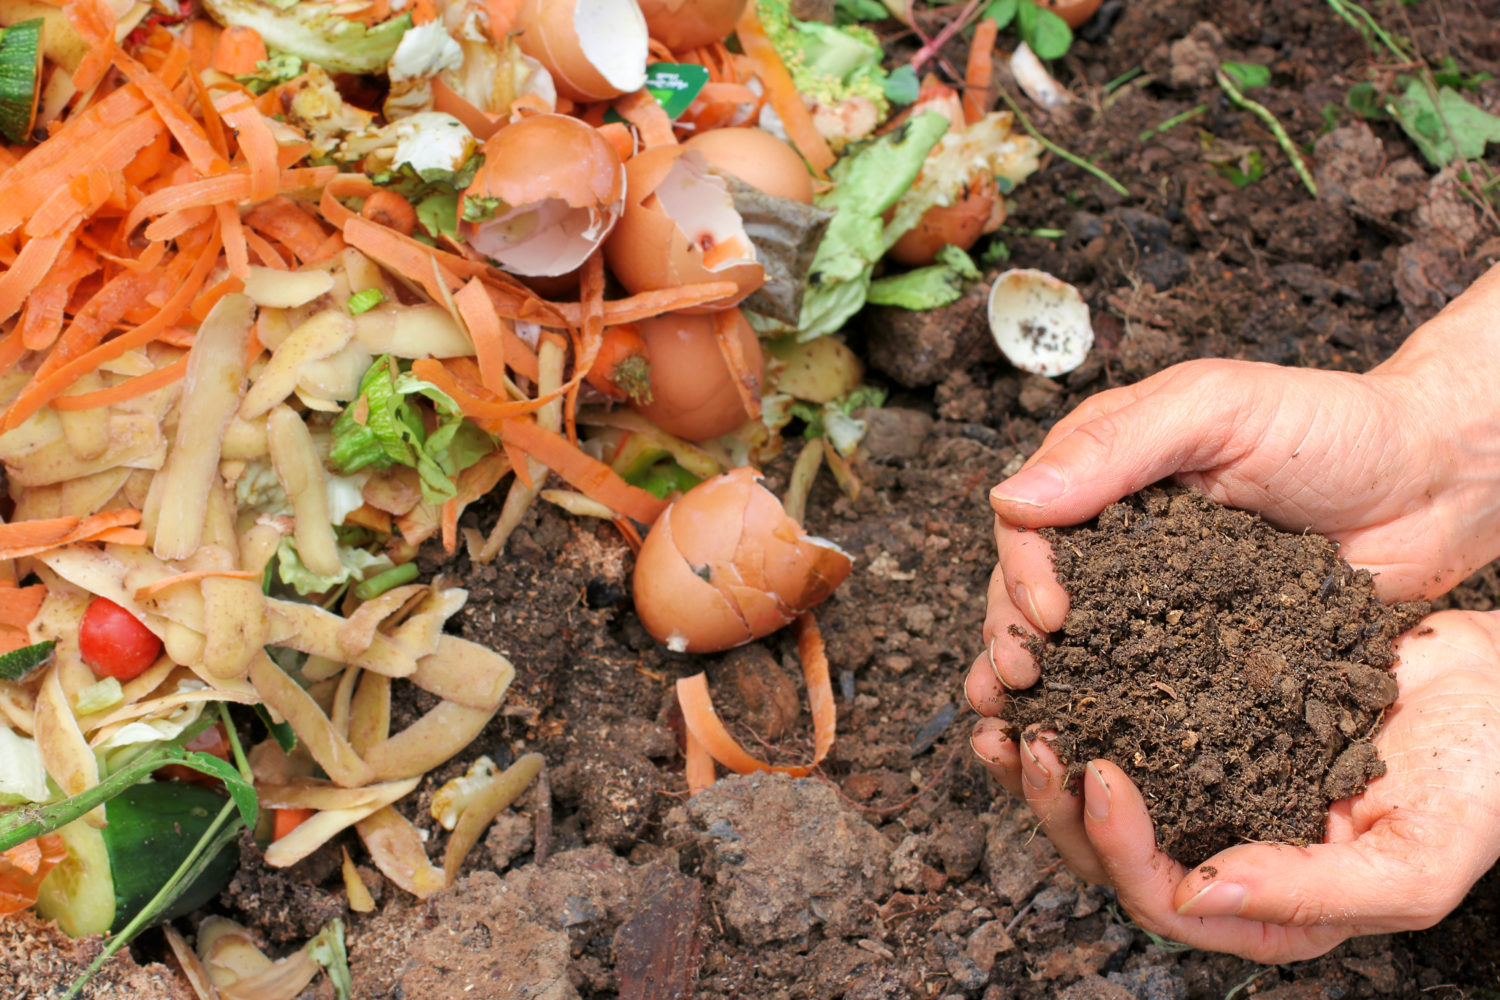 Controlling Pests in Compost - Keep Animals Out of Compost Piles ...